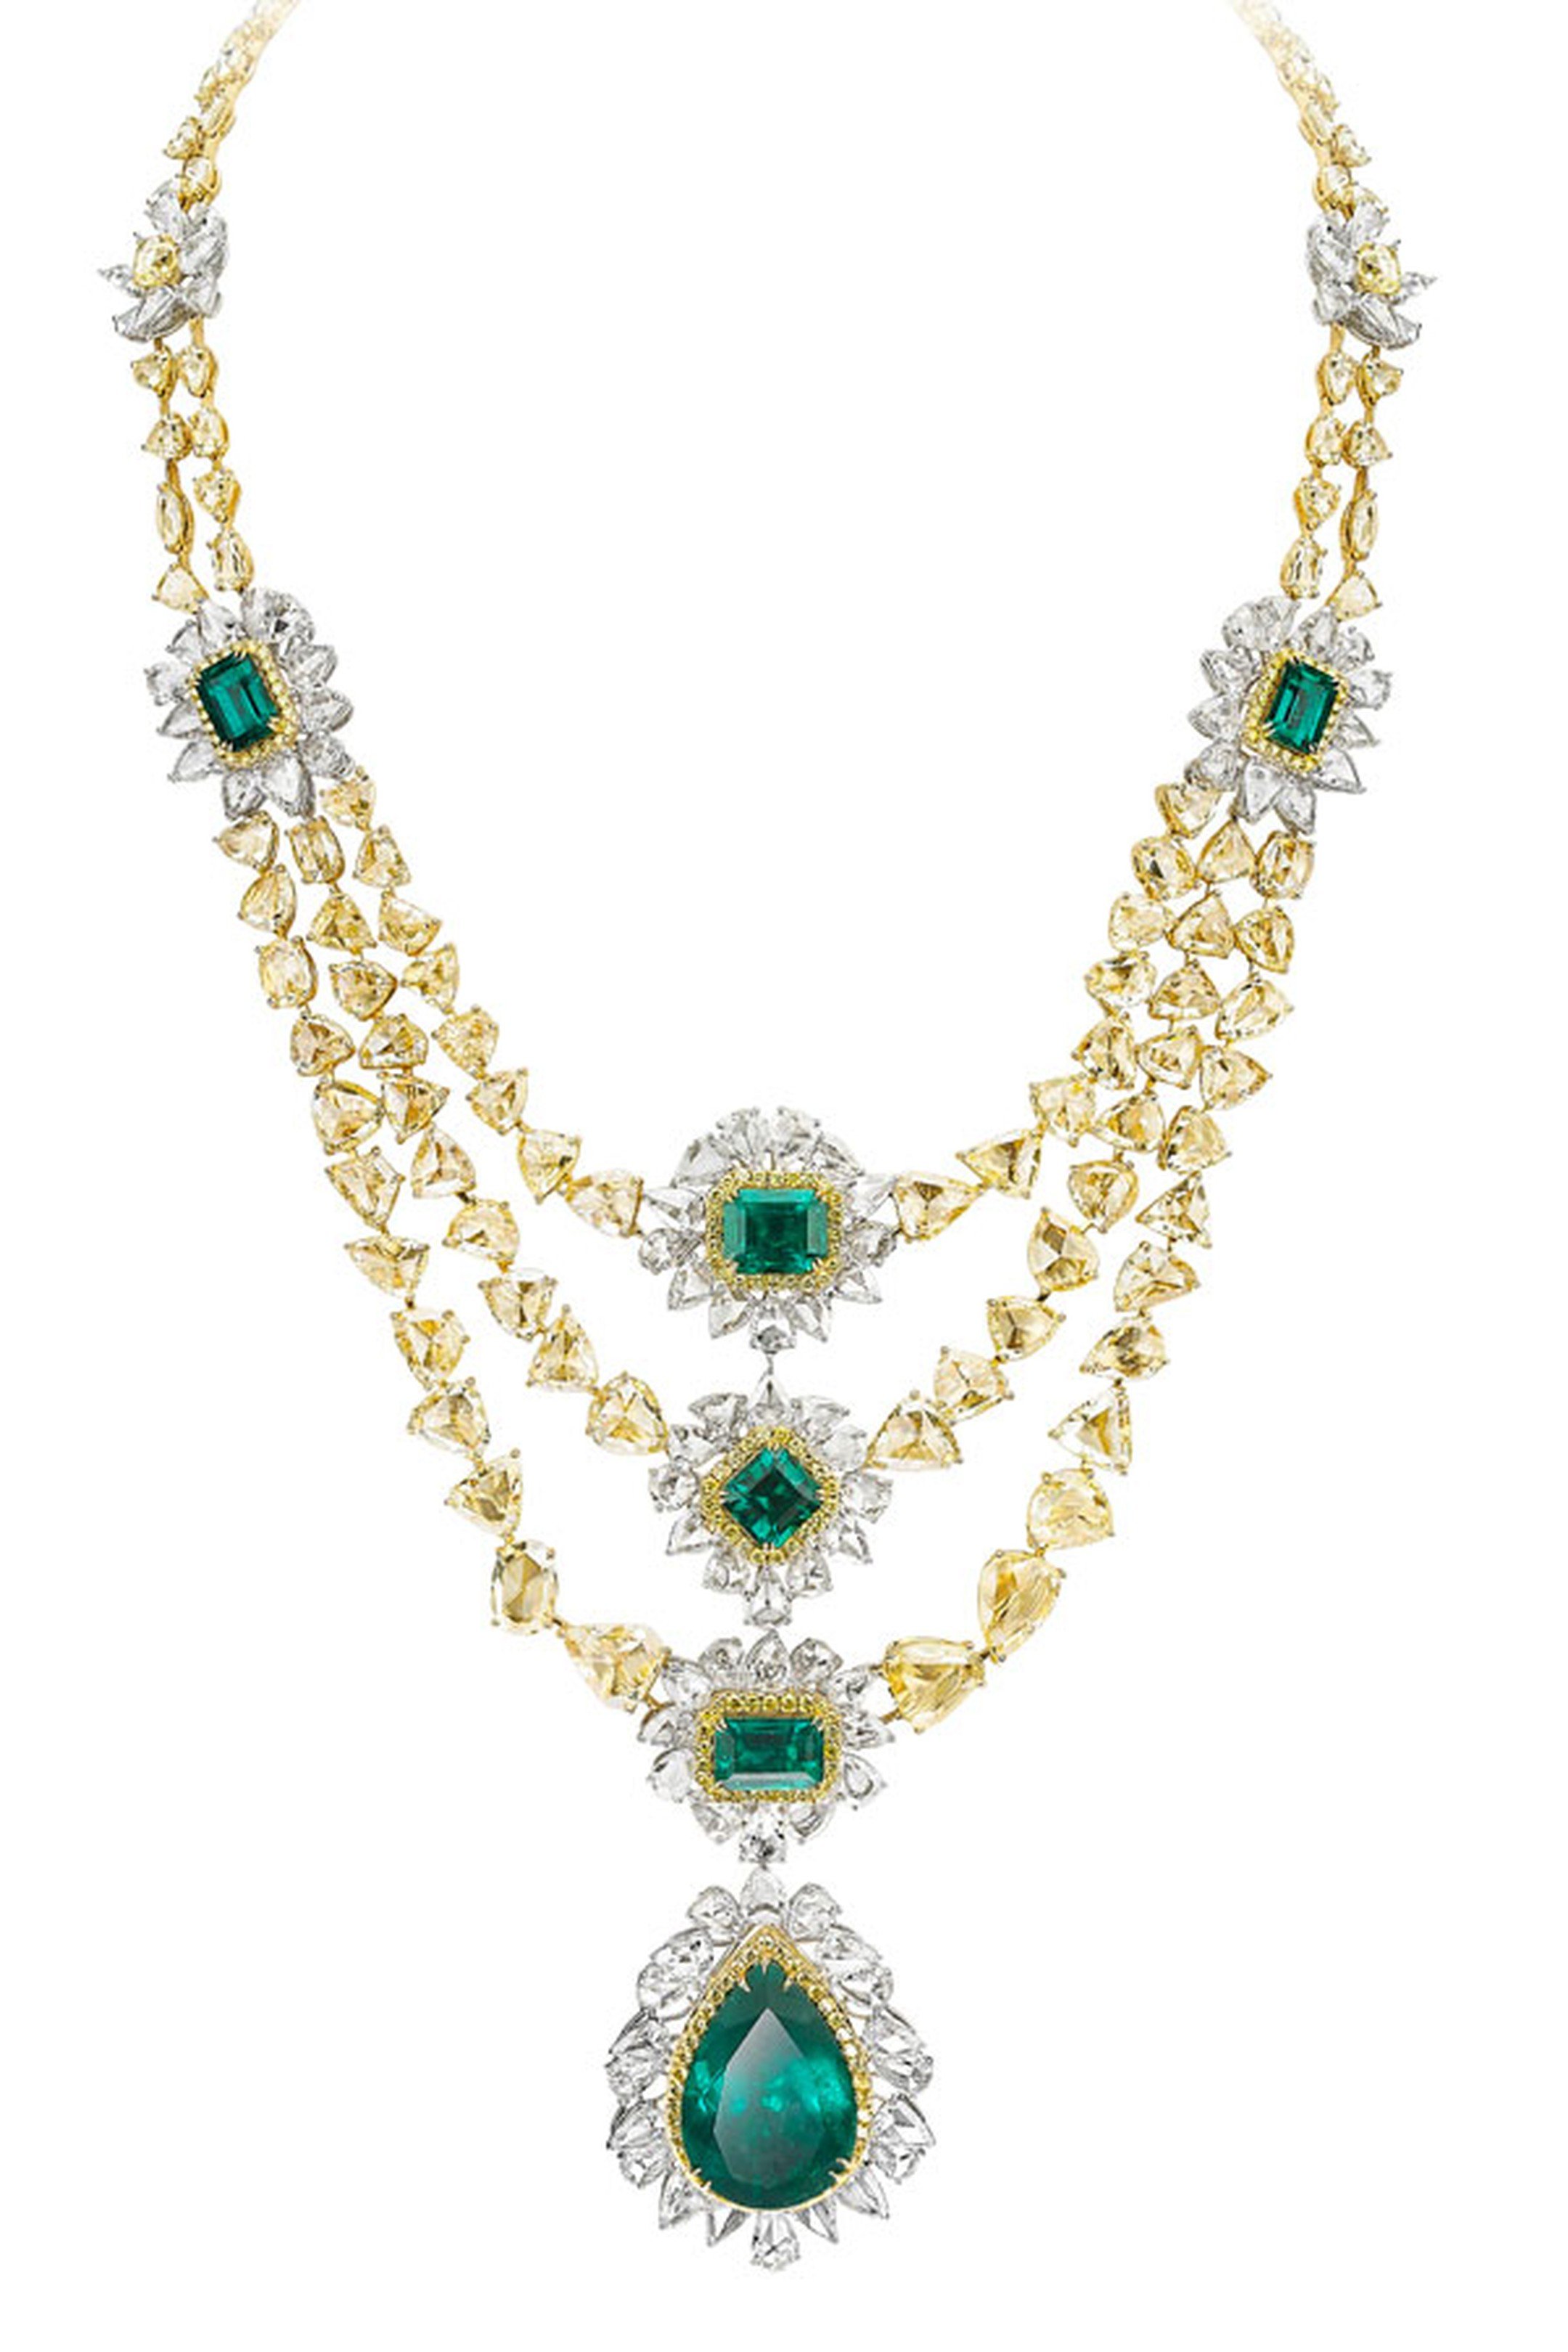 Avakian-yellow-diamond-and-emerald-necklace